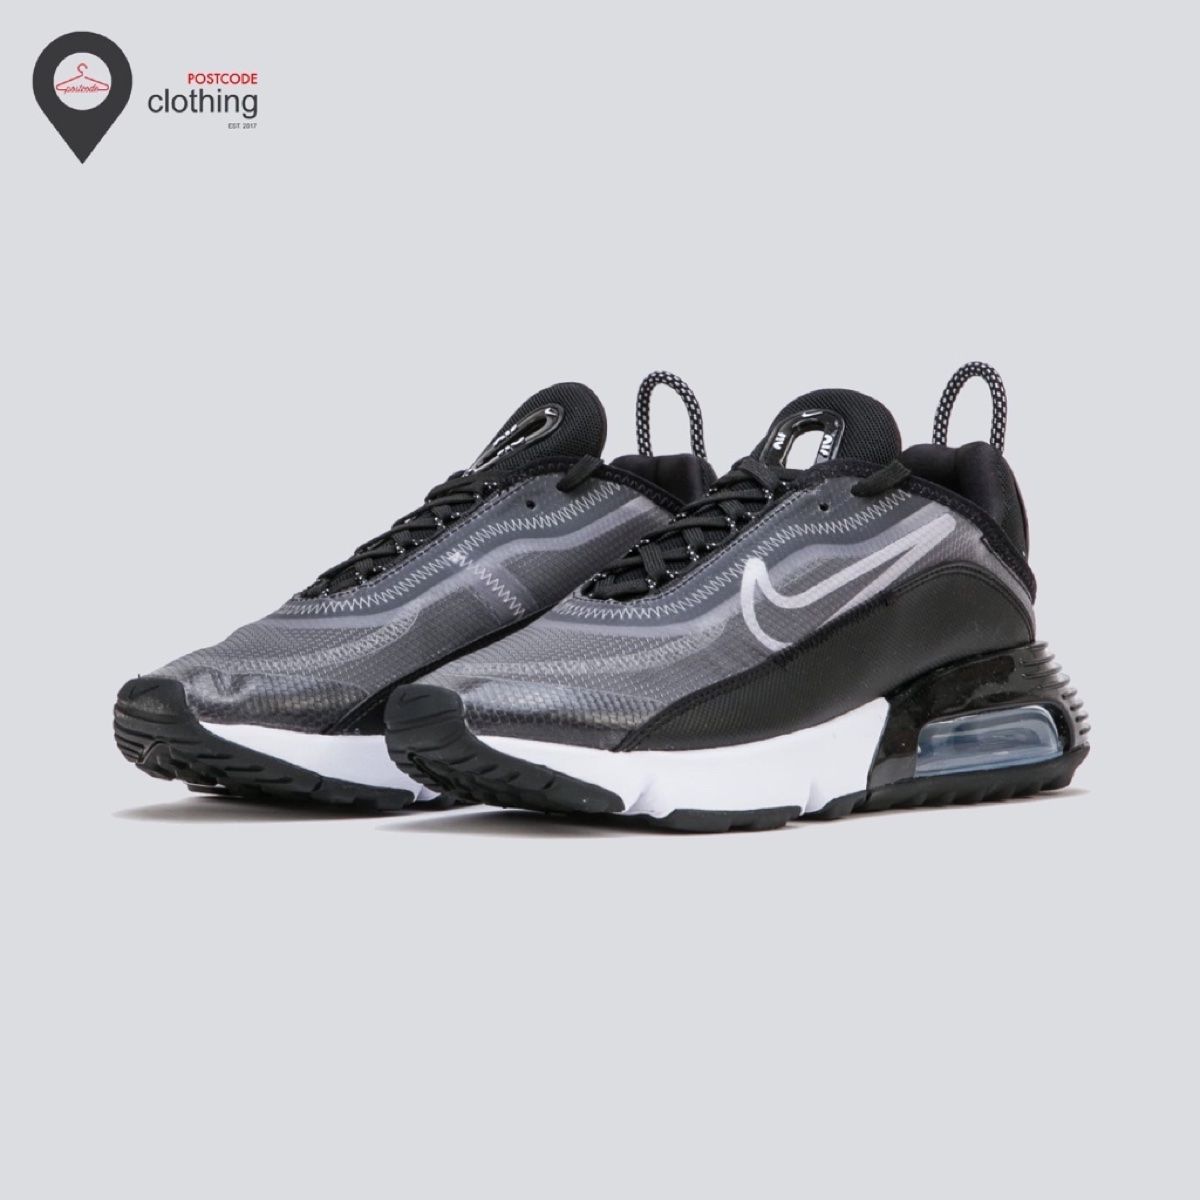 Nike W Air Max 2090 - Black/White/Metallic Silver